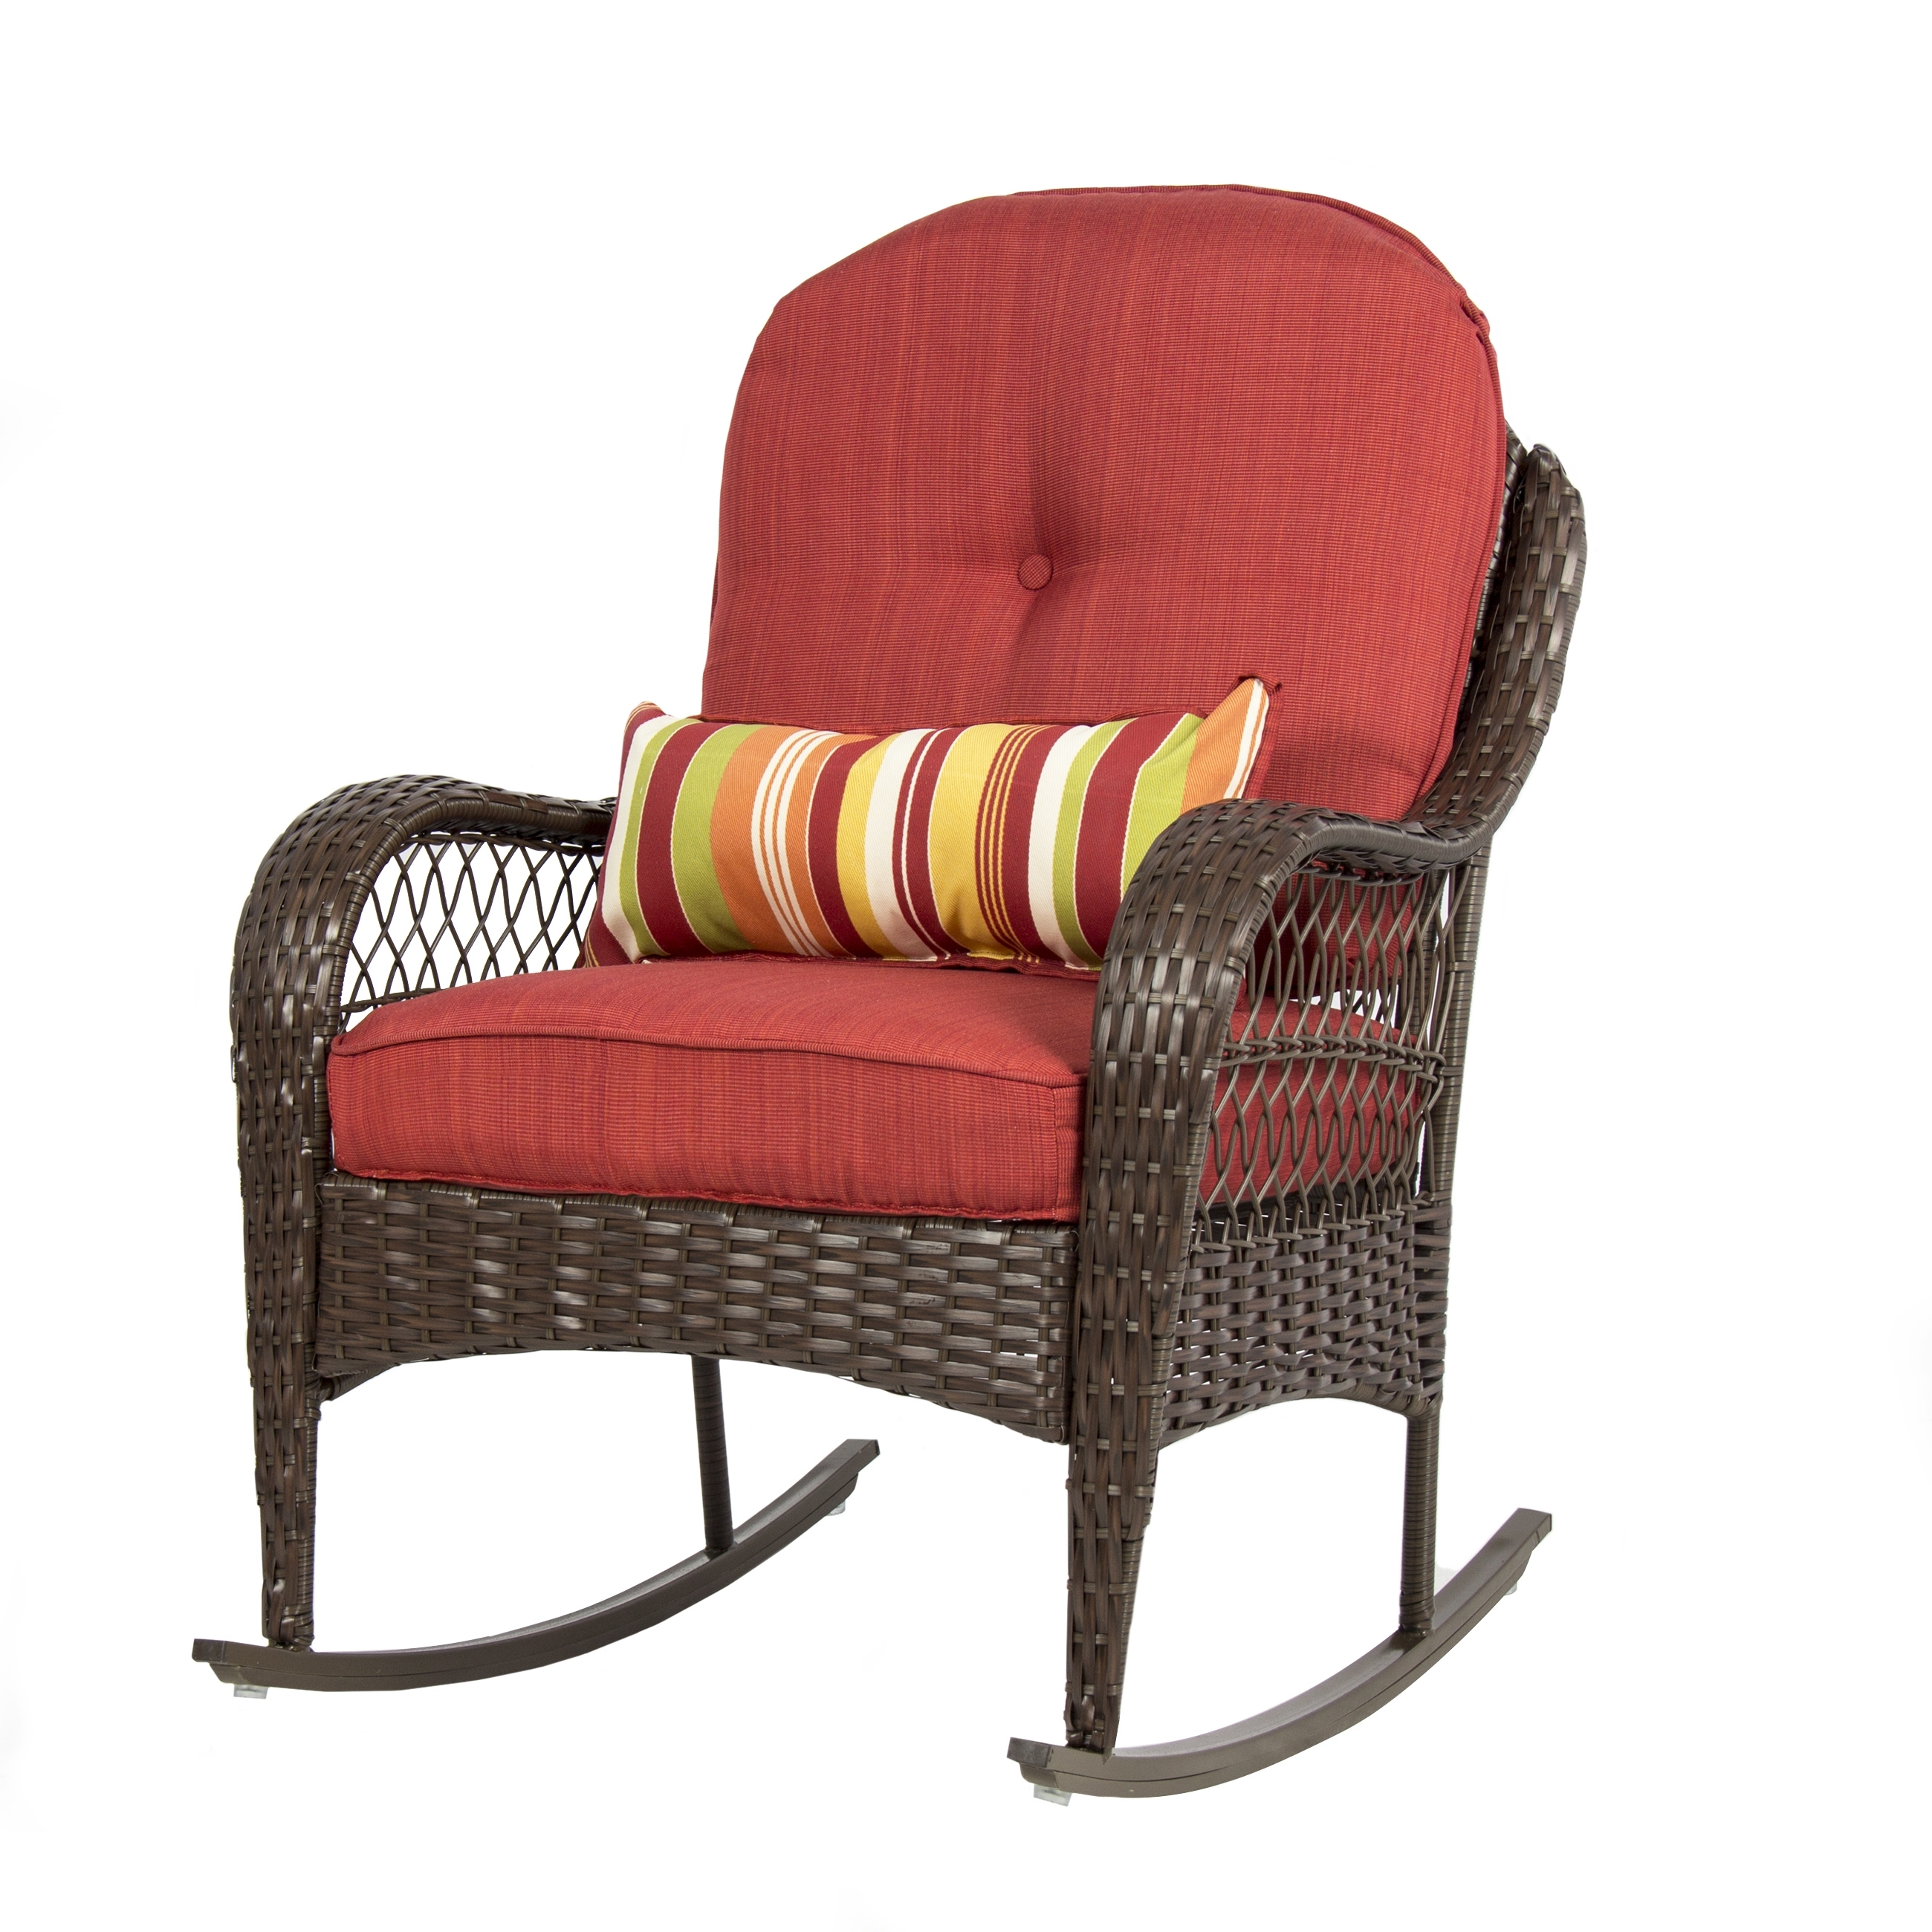 Widely Used Walmart Rocking Chairs For Best Choice Products Wicker Rocking Chair Patio Porch Deck Furniture (View 19 of 20)